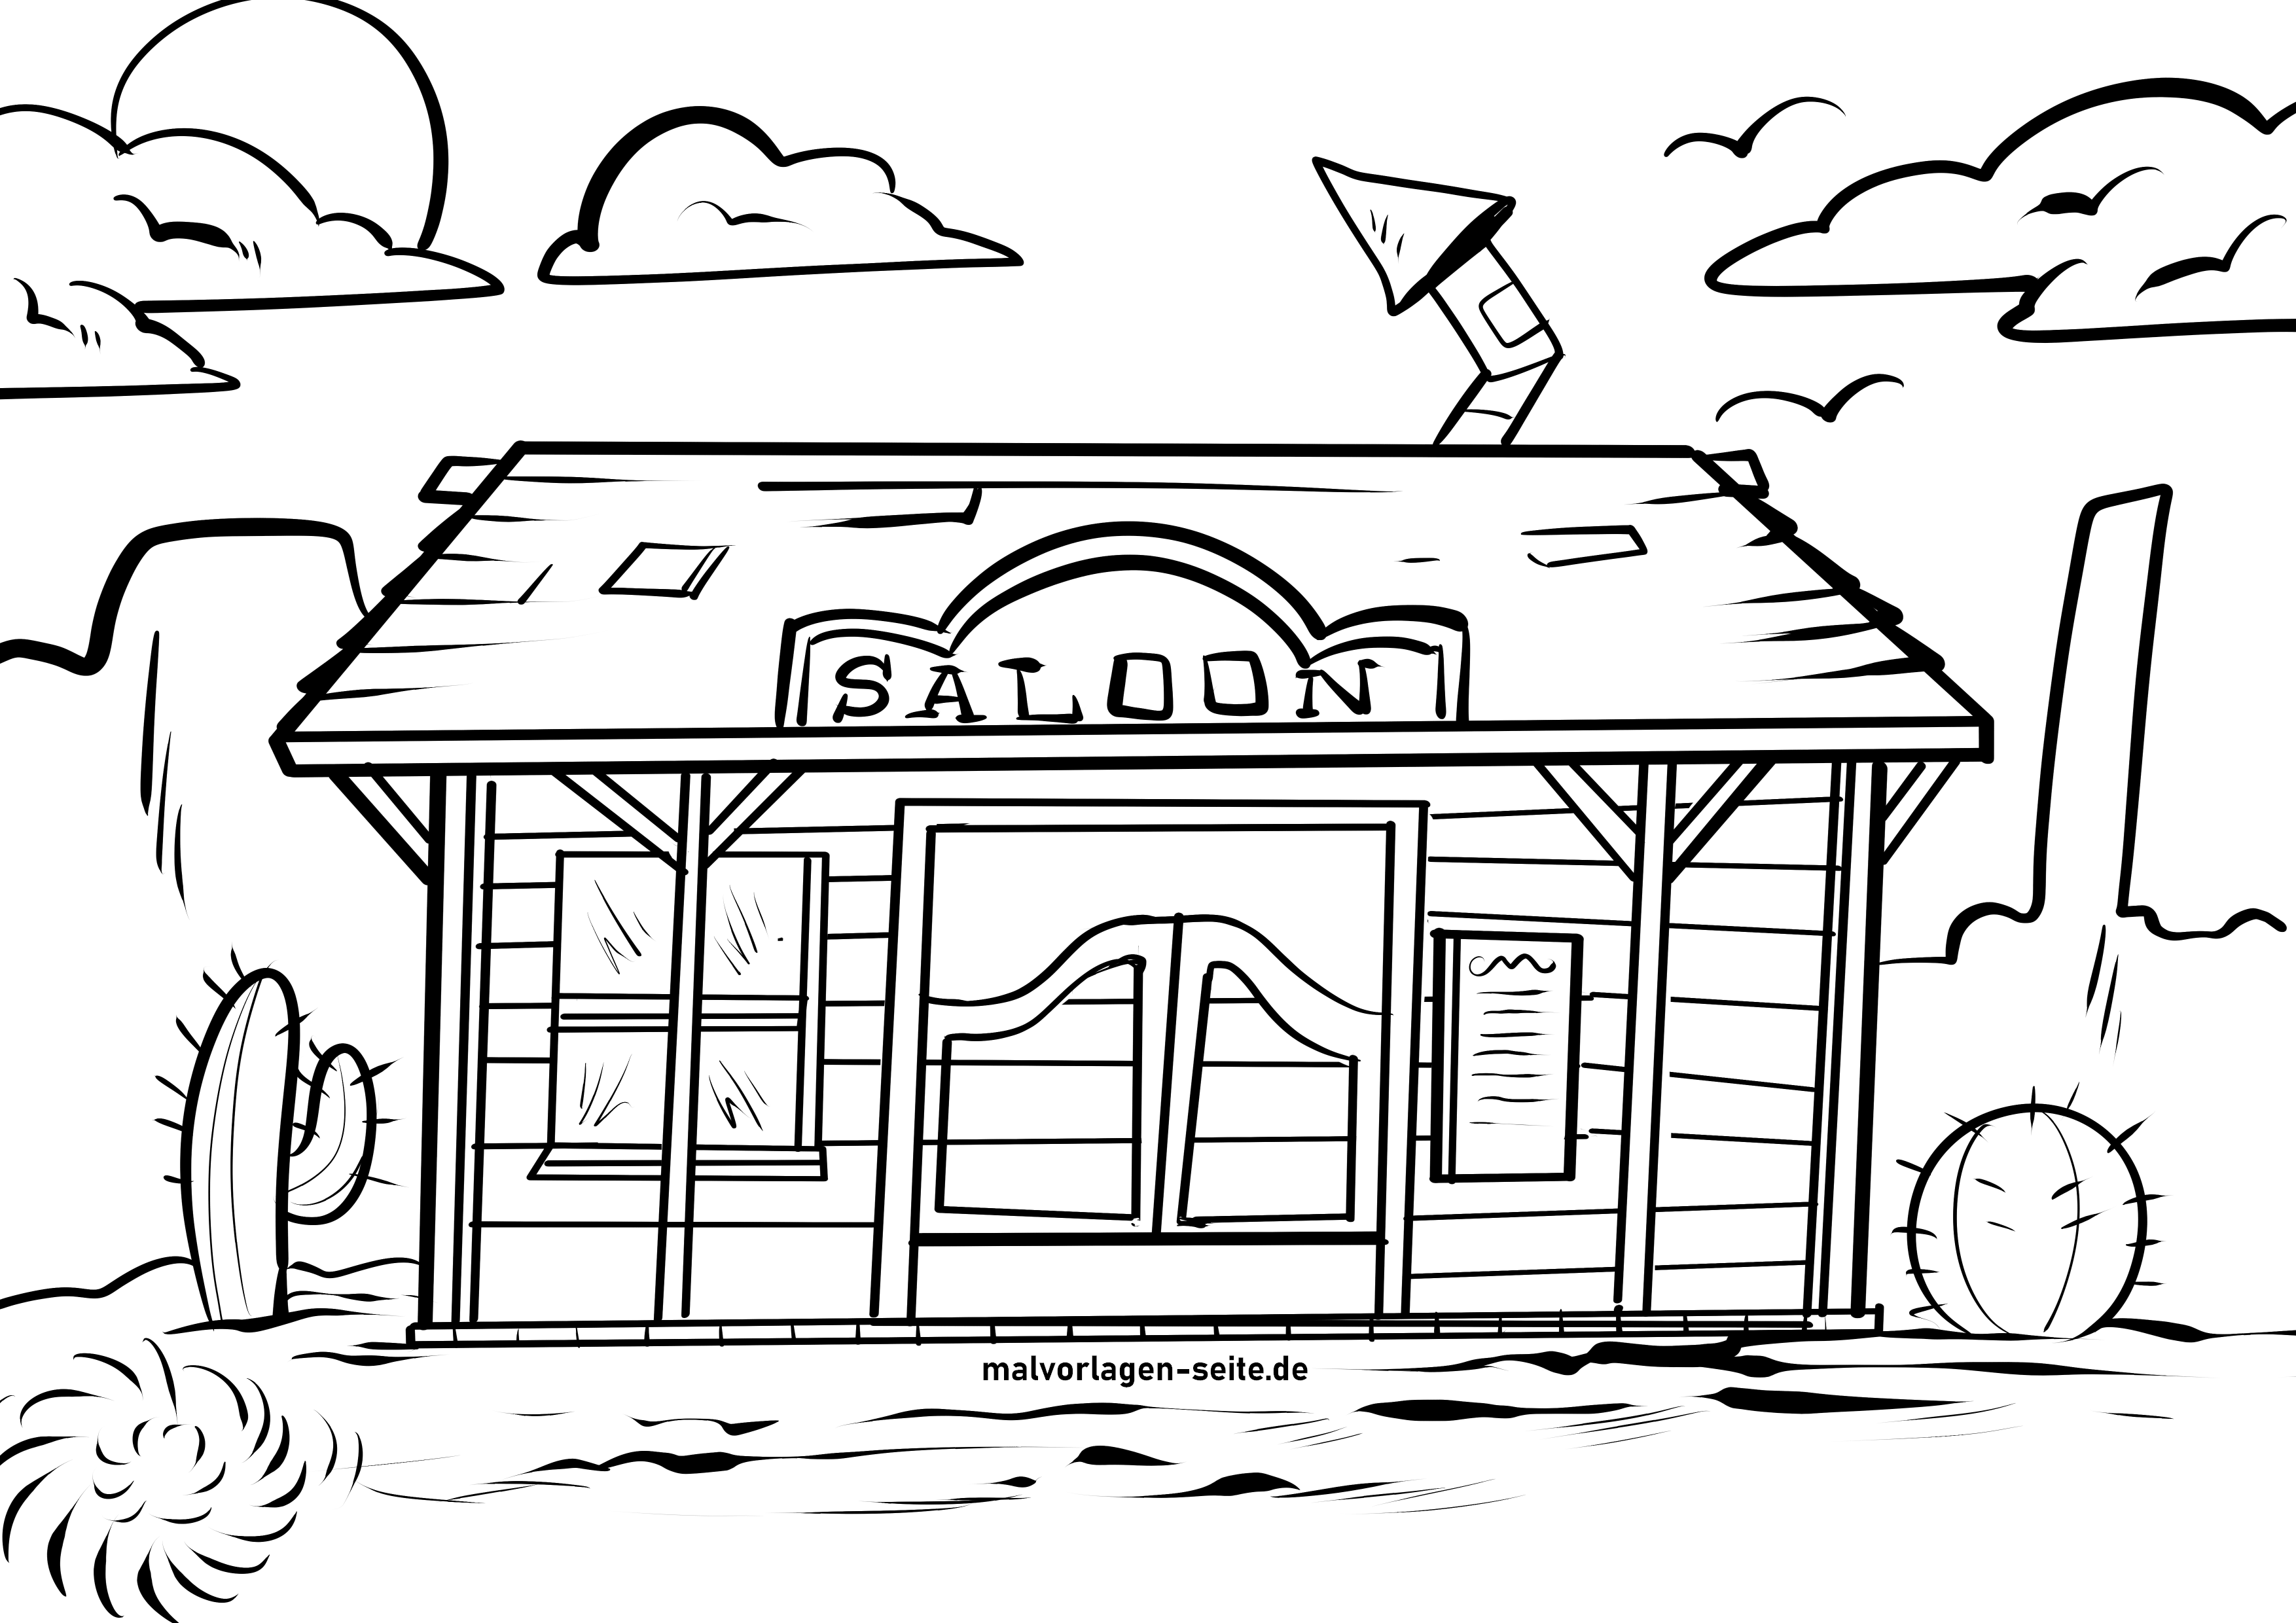 Coloring page saloon in the wild west